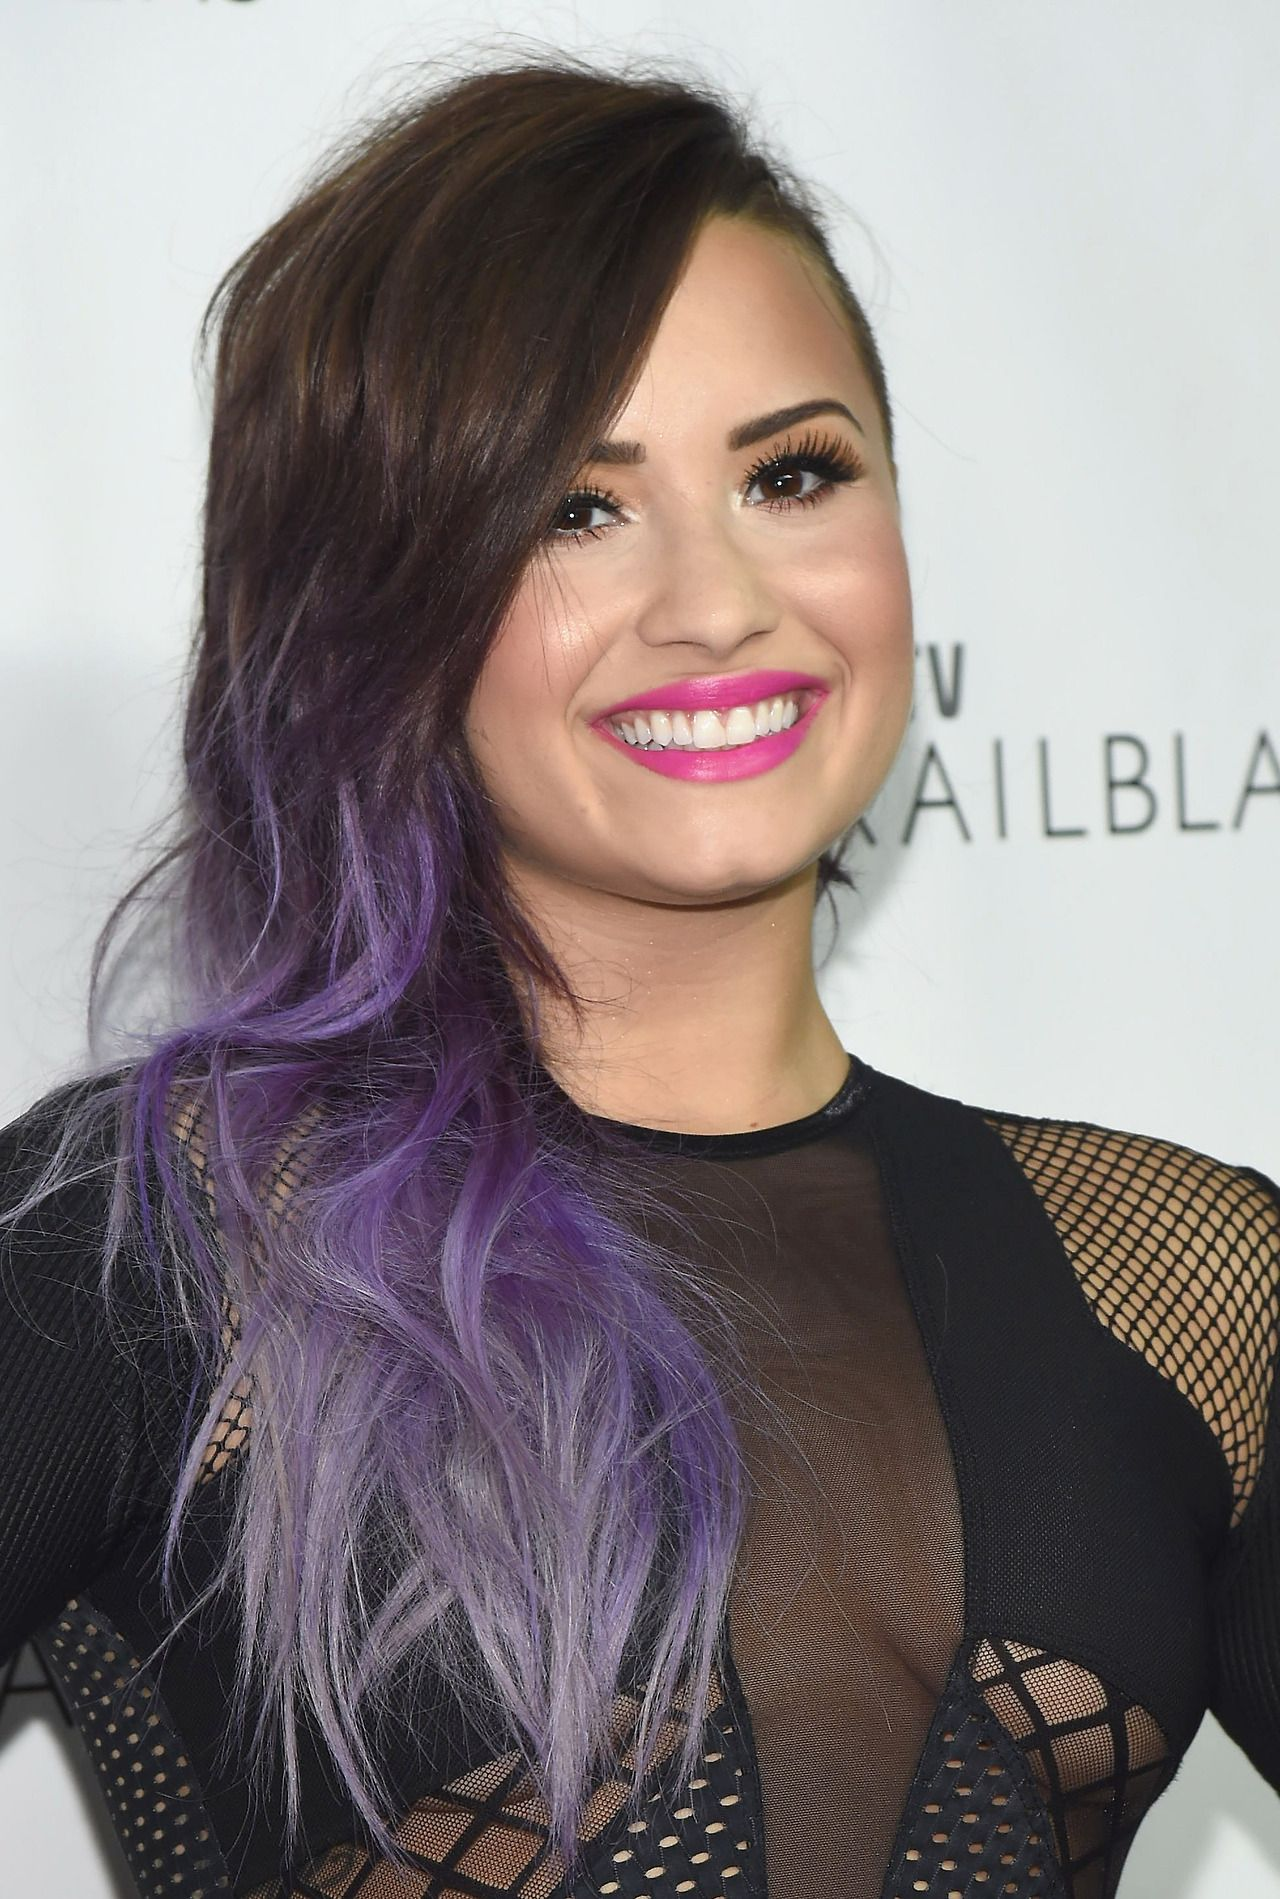 Demi Lovato Lilac Ombre Beauty Pinterest Ombre And Hair Style - Demi lovato ombre hair